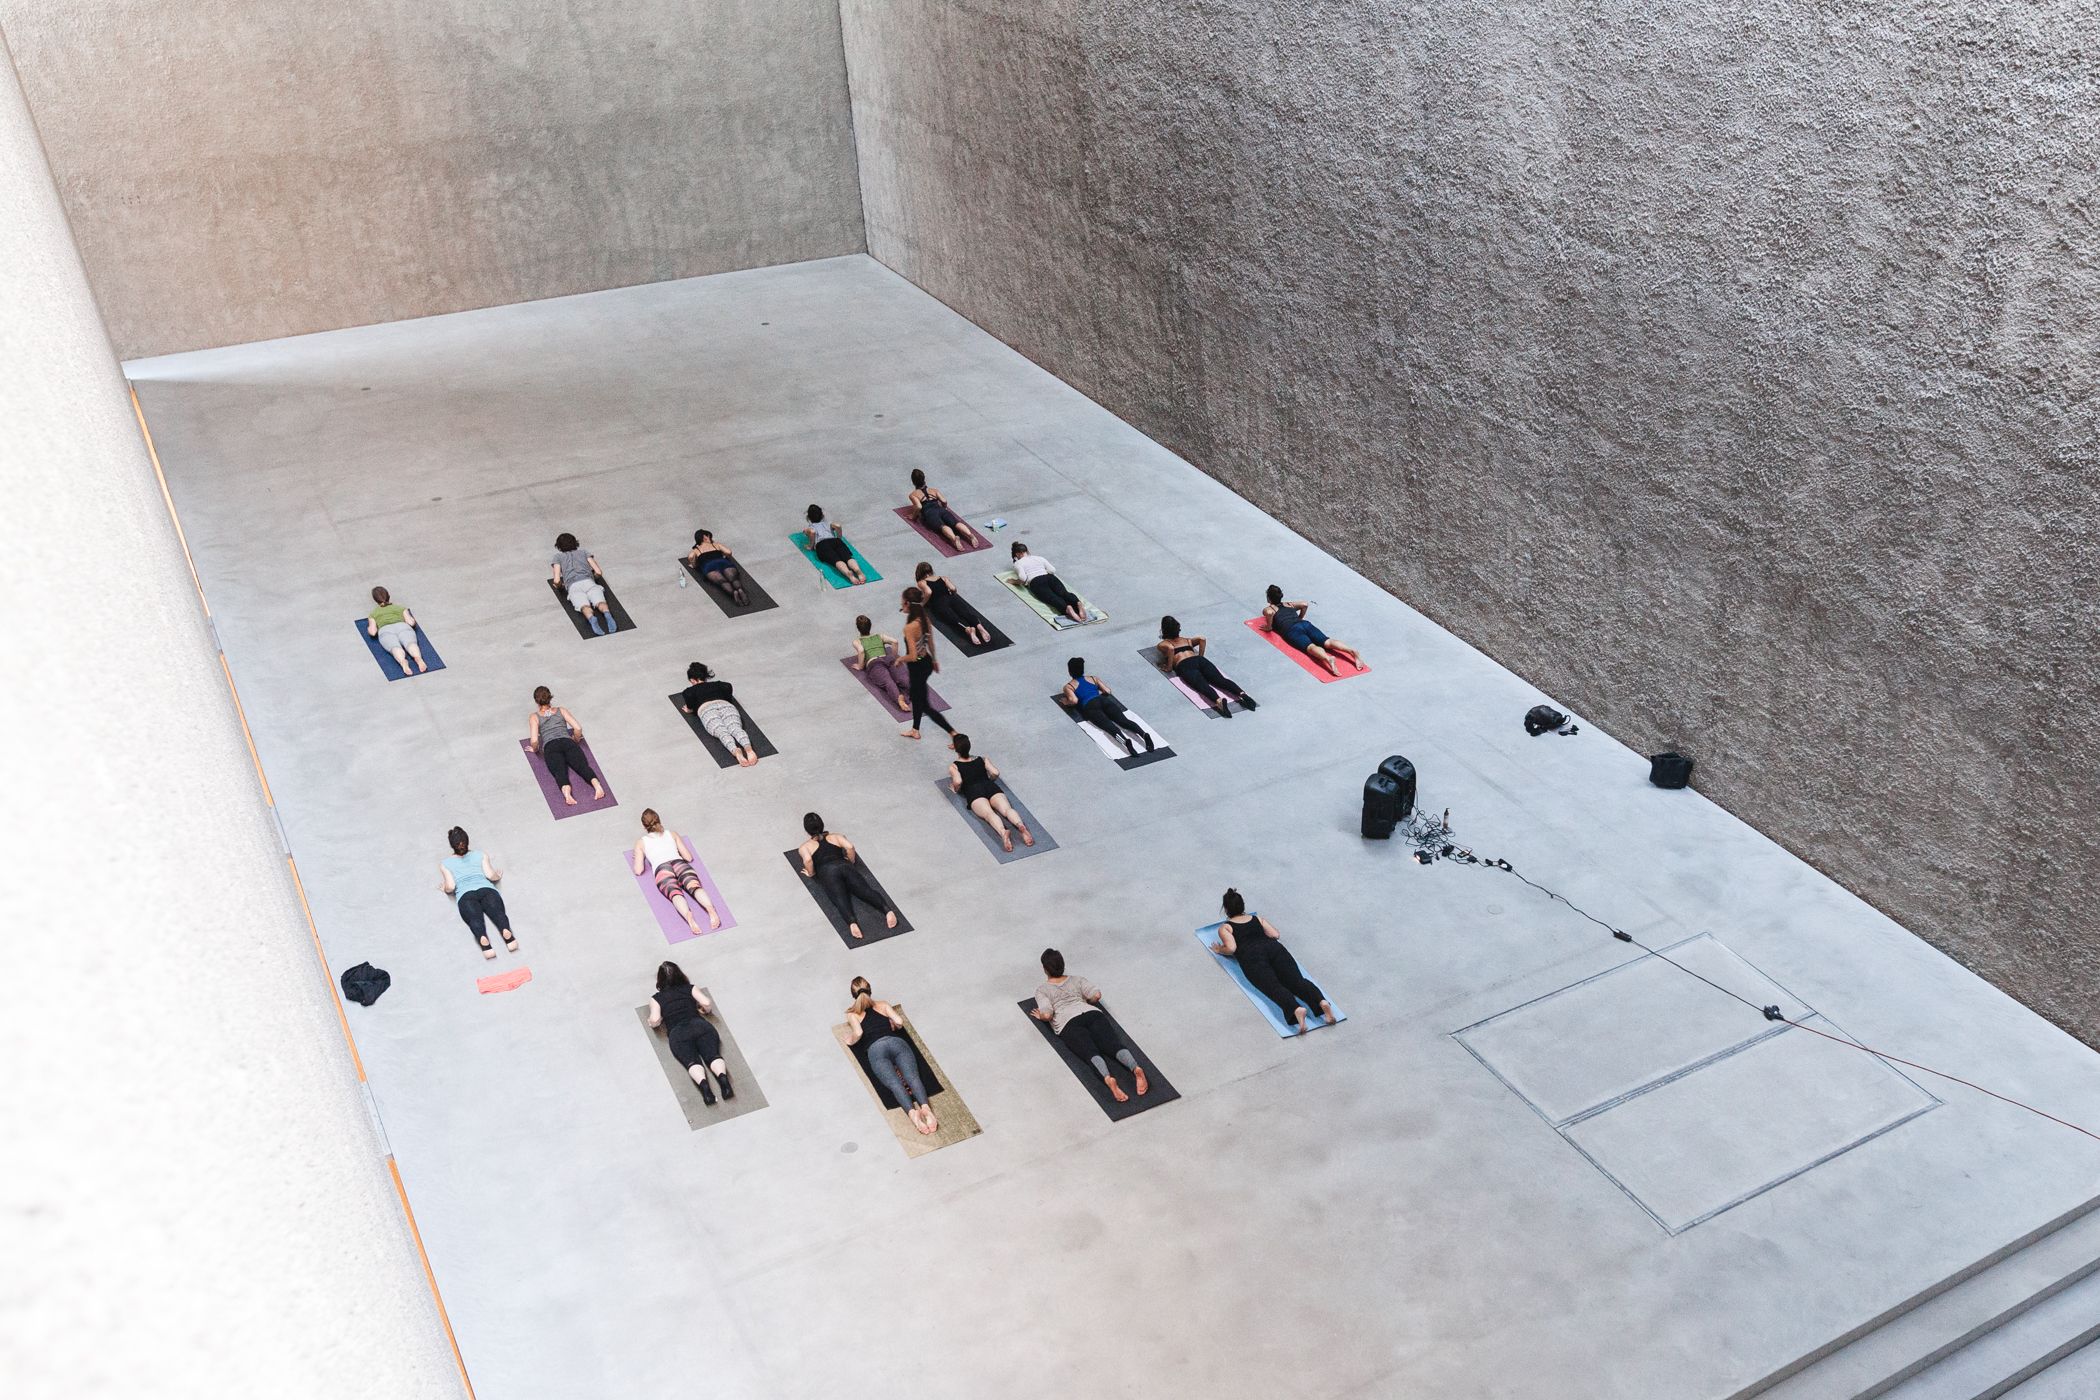 Yoga Meets Art at König Gallery, Berlin with Eva Kaczor